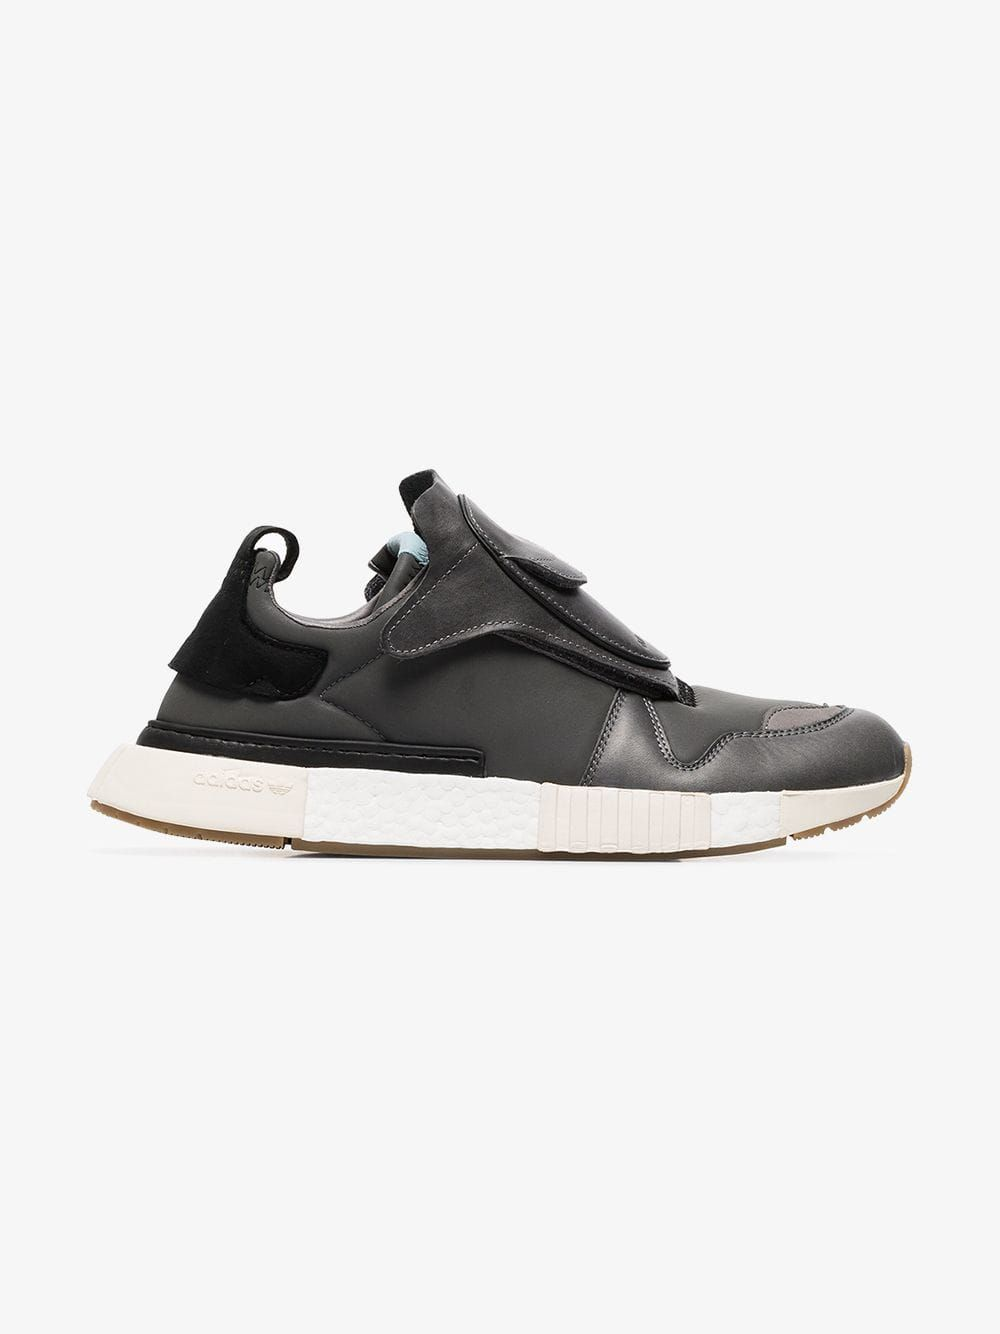 Pin by matt willis on Trainers in 2019 | Sneakers, Shoes